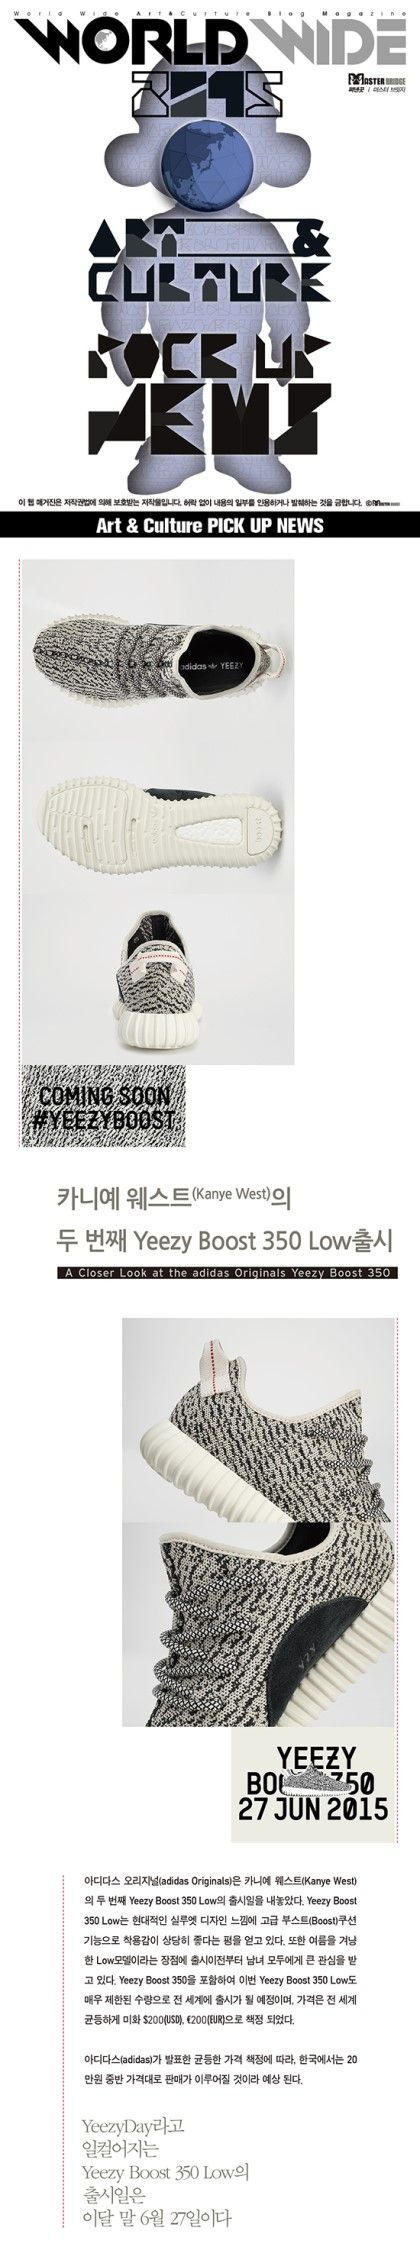 Blog Magazine ● WORLD WIDE: Art & Culture PICK UP NEWS∥카니예 웨스트(Kanye West)의 두 번째 Yeezy Boost 350 Low출시 : 네이버 블로그